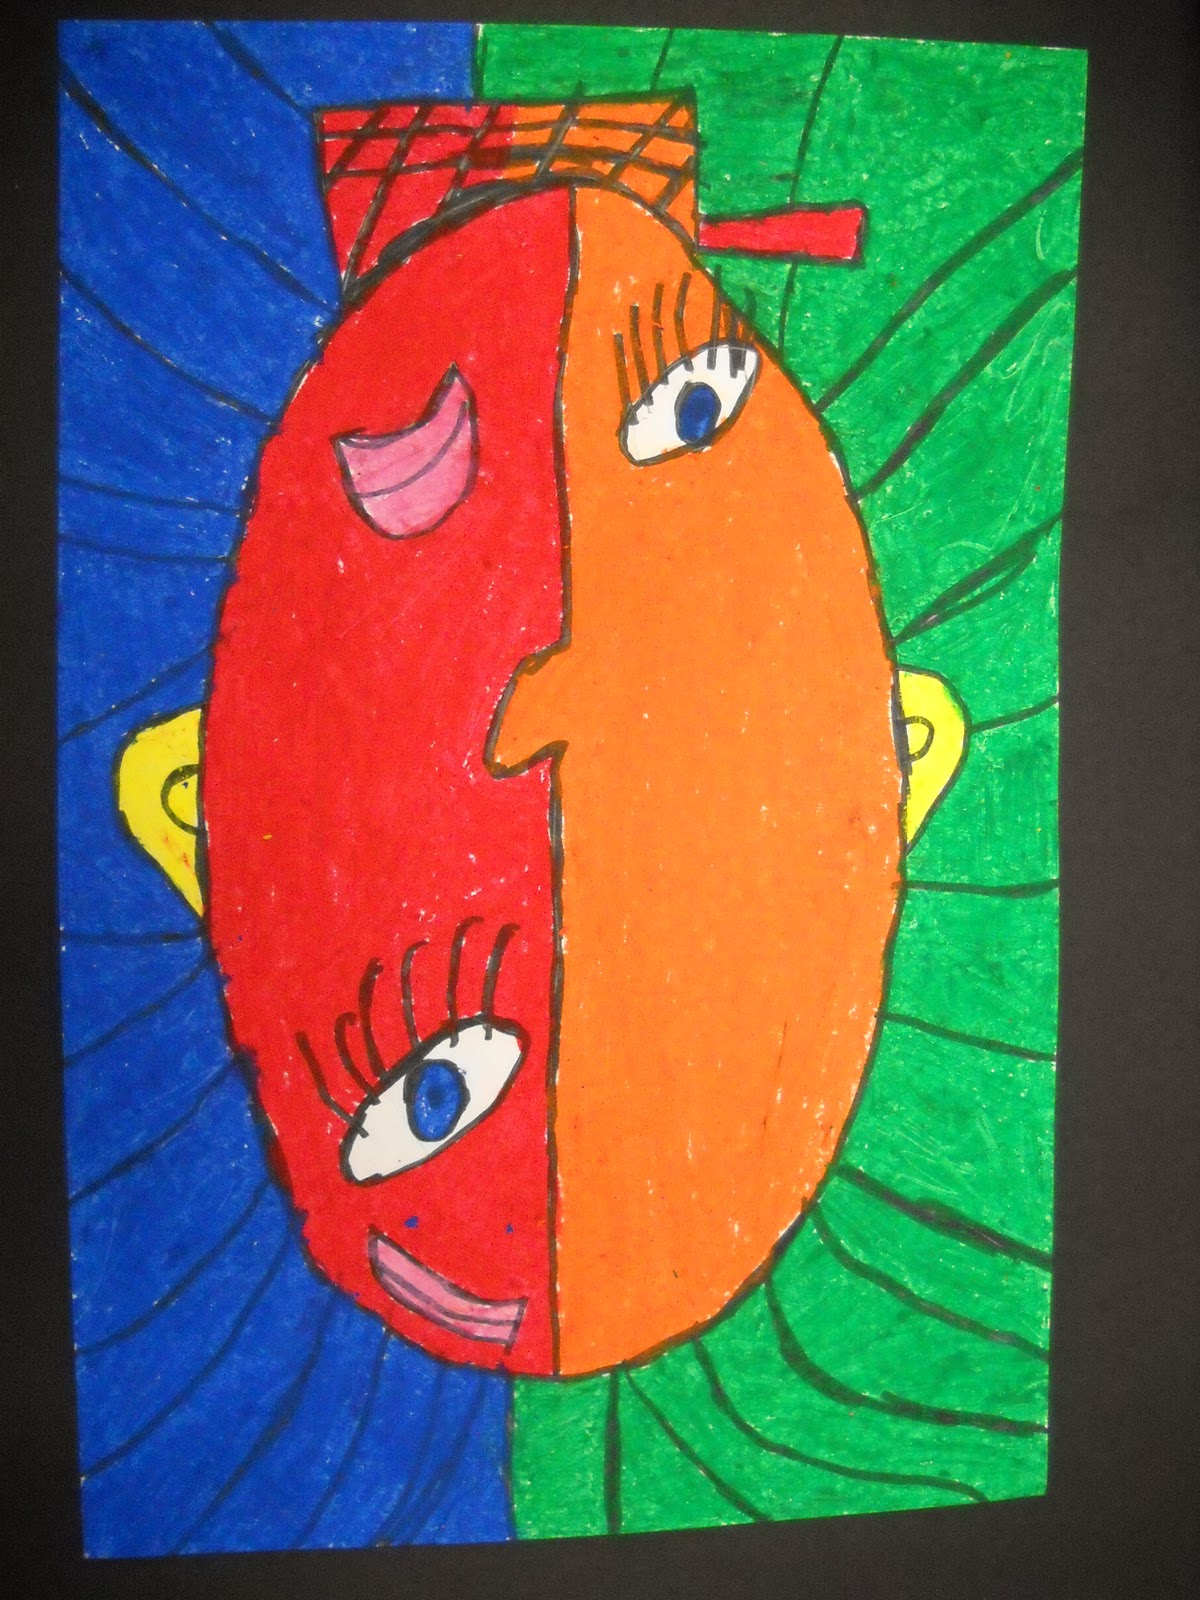 Teach Art and Create: Picasso Inspired Cubism Self-Portraits